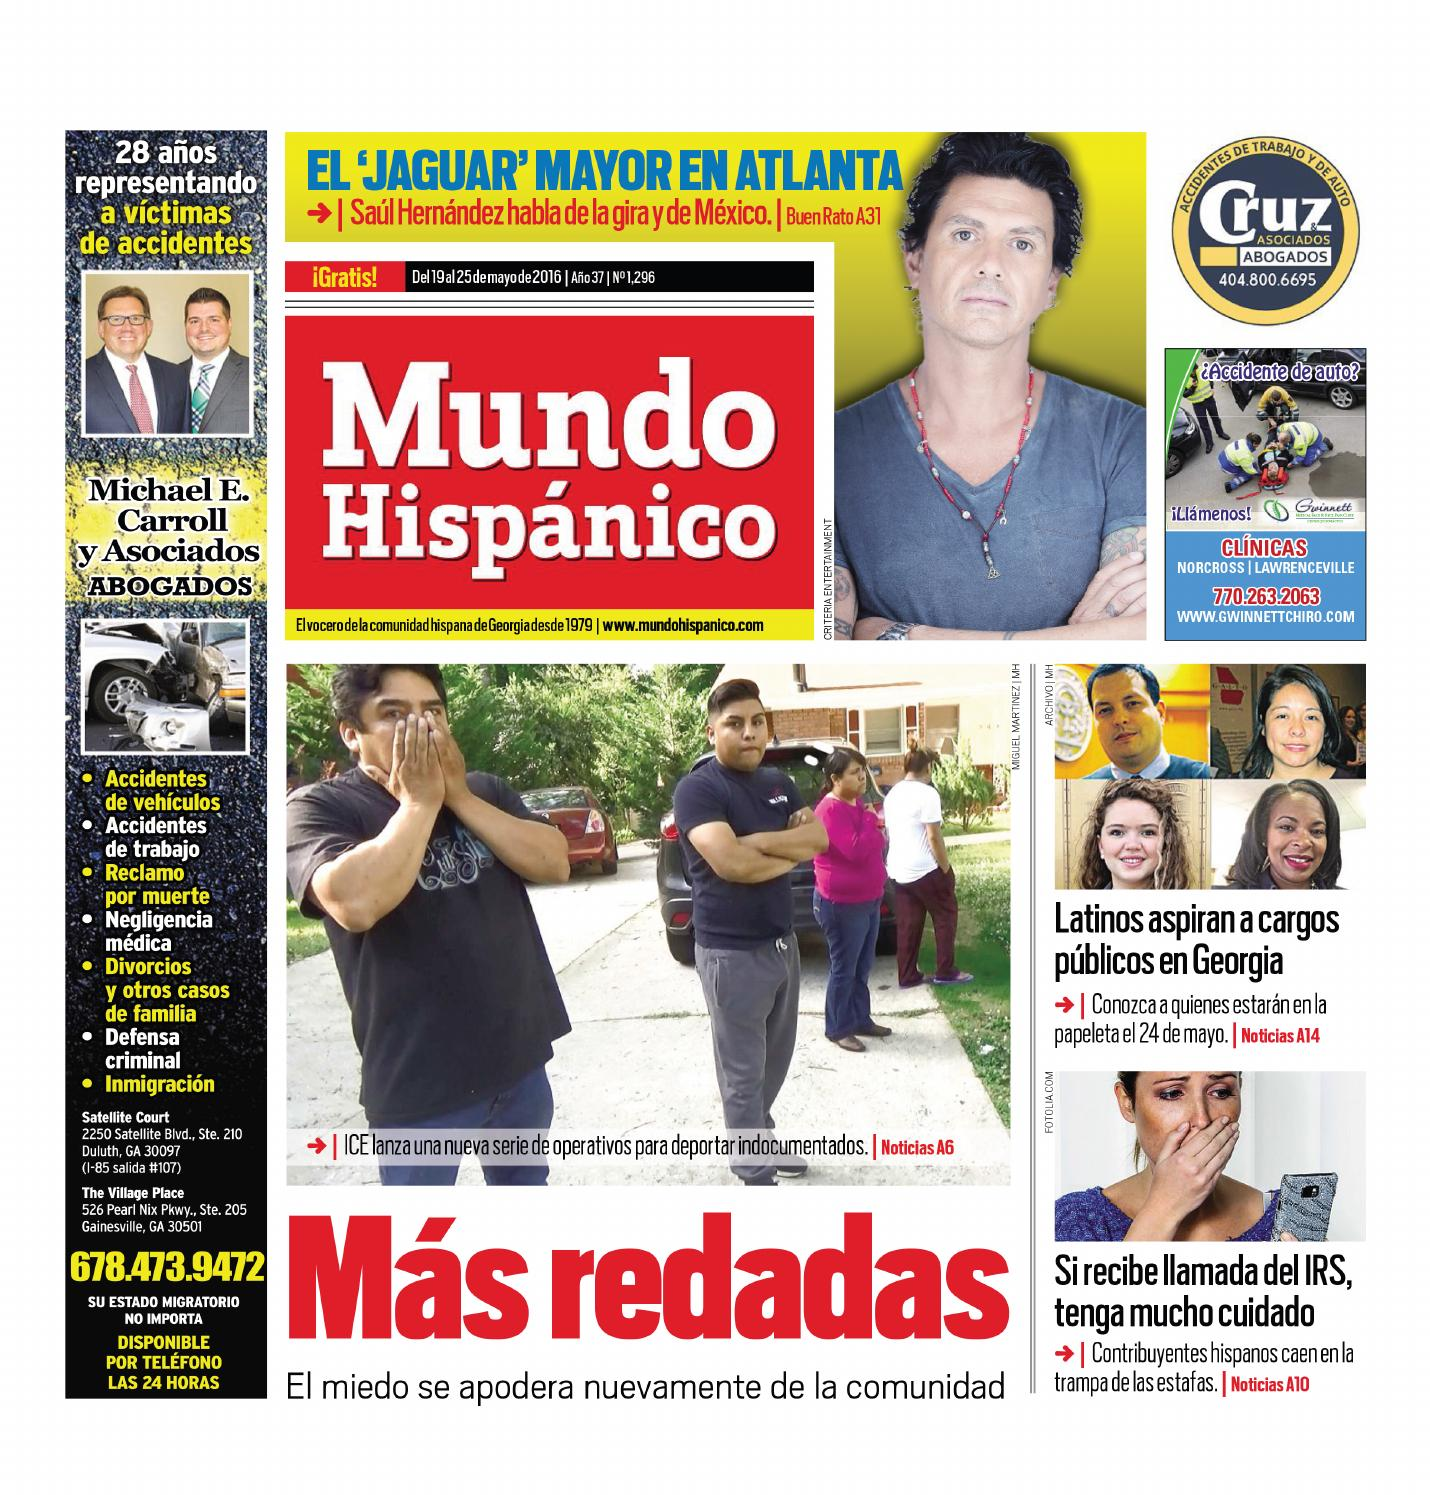 Mund 05192016 mundo a1 by MUNDO HISPANICO - issuu